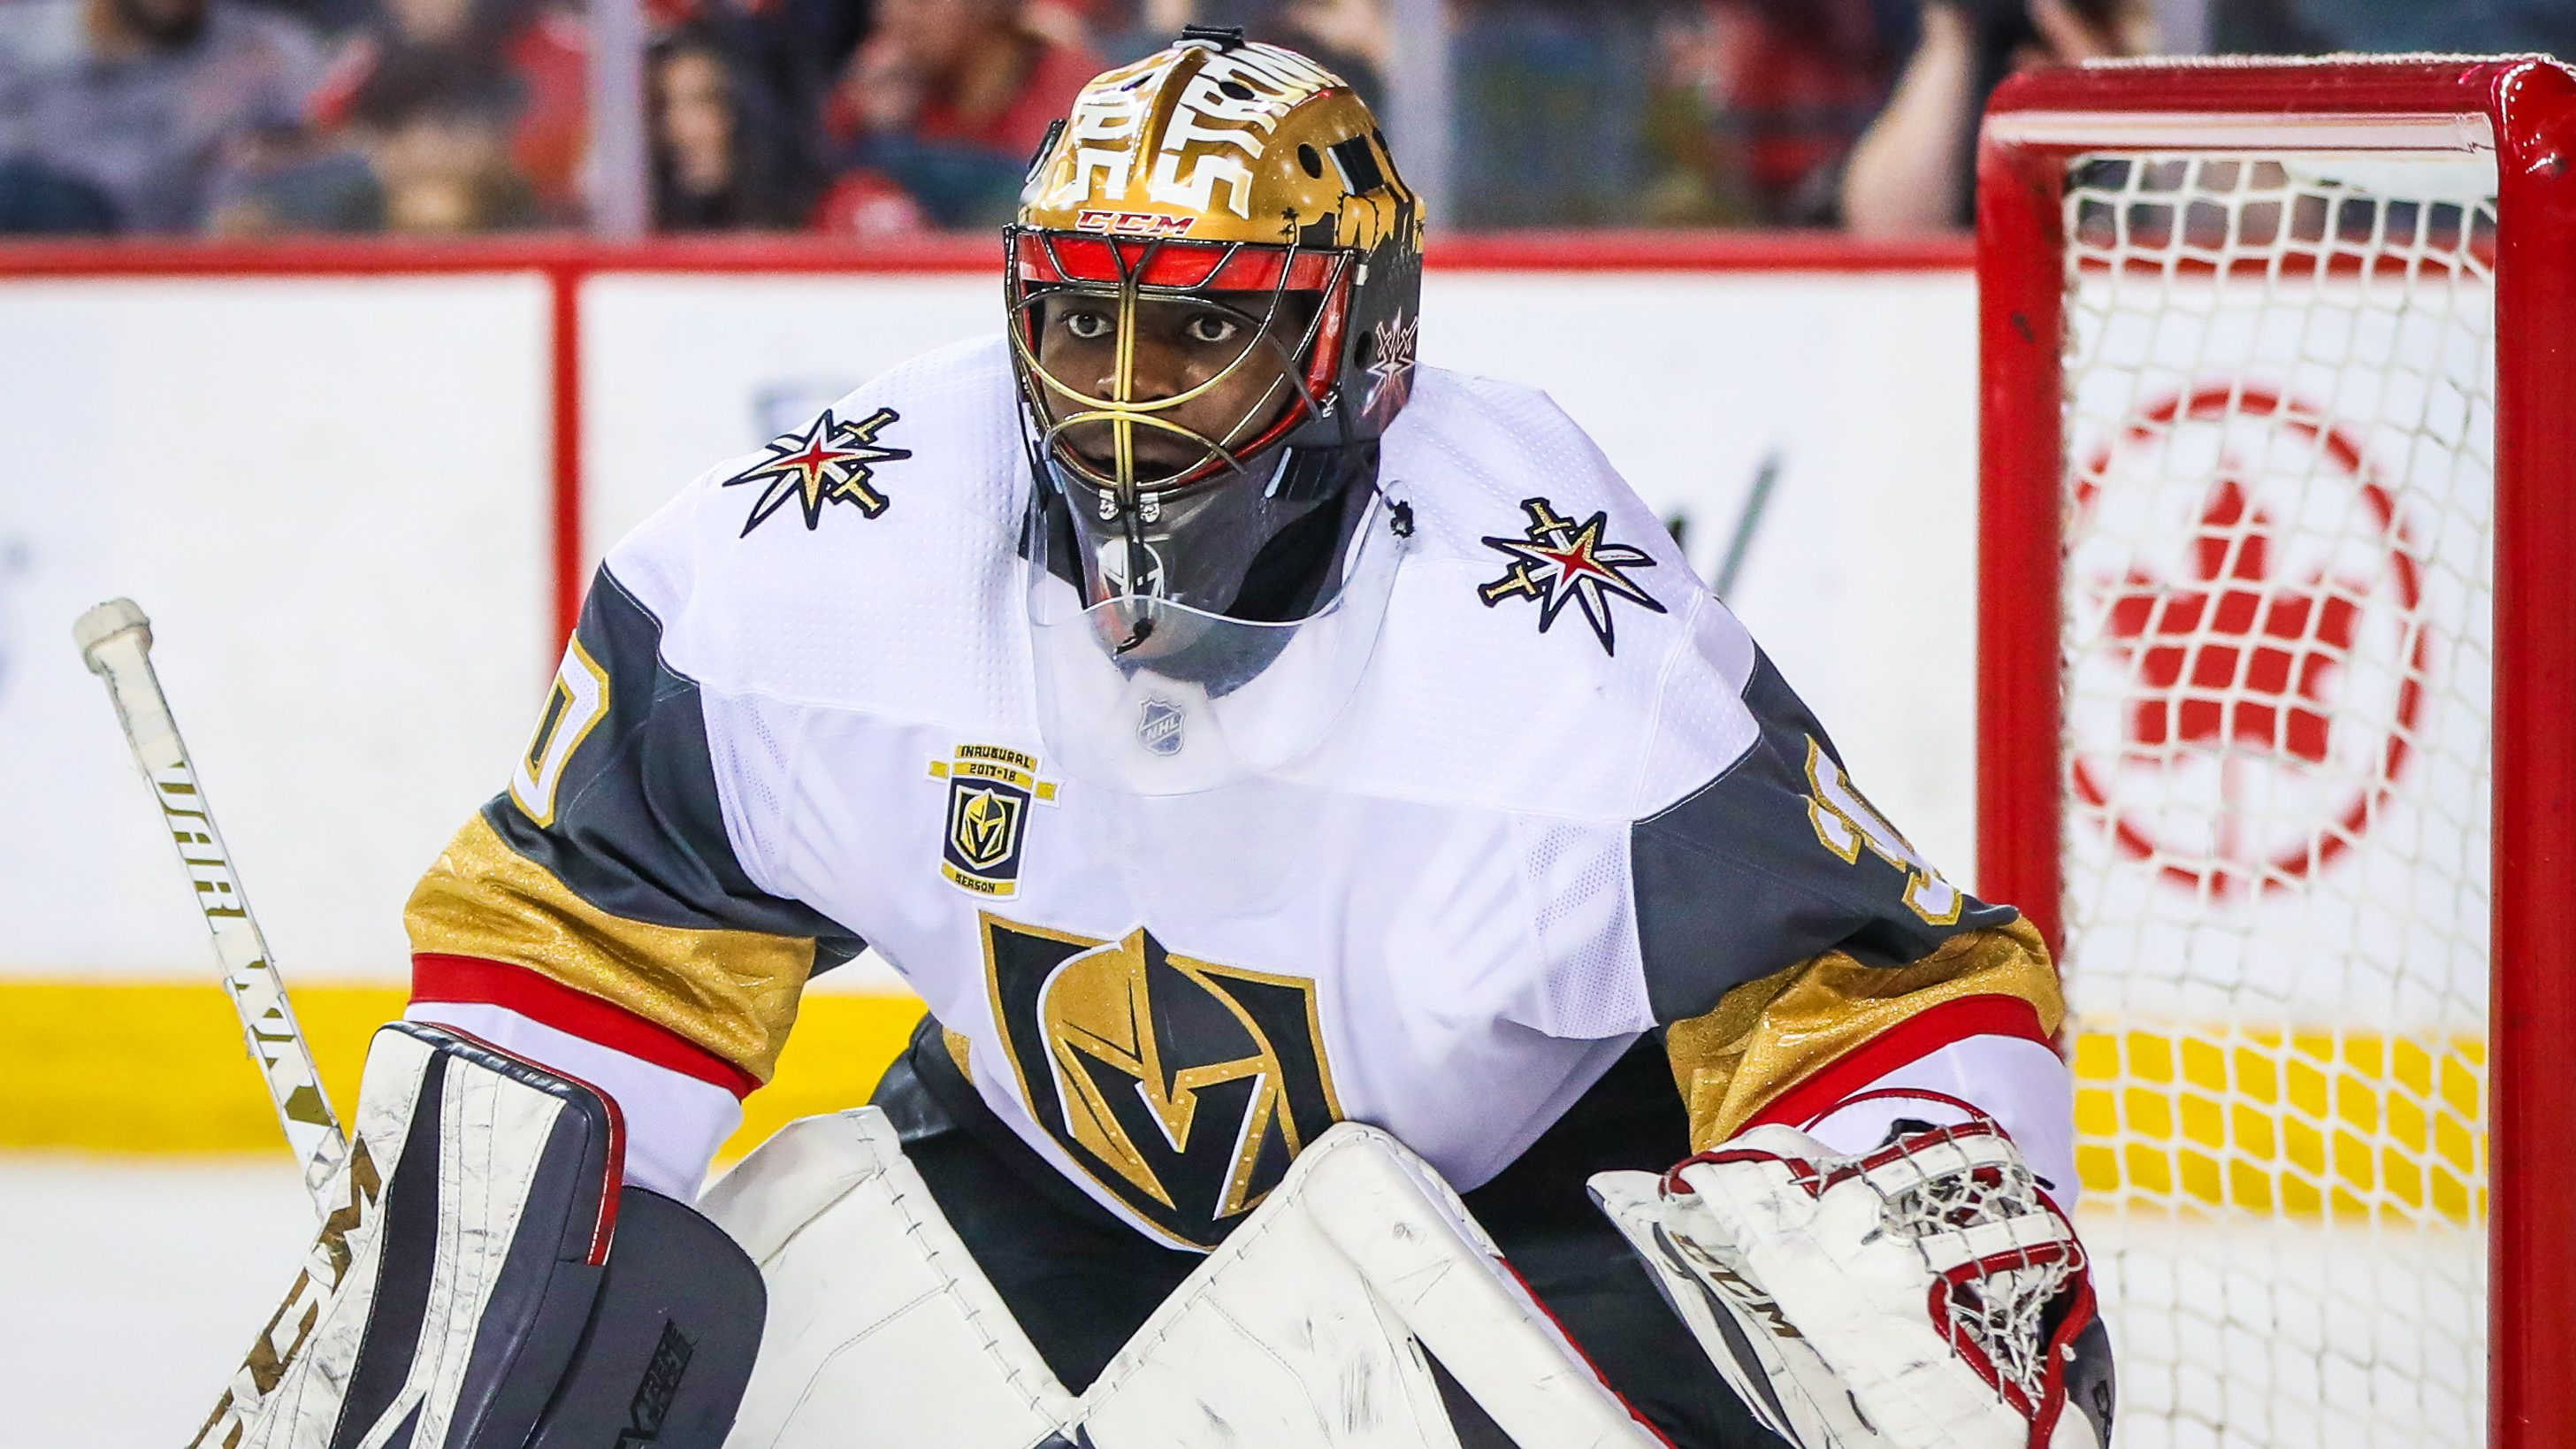 NHL: Vegas Golden Knights at Calgary Flames